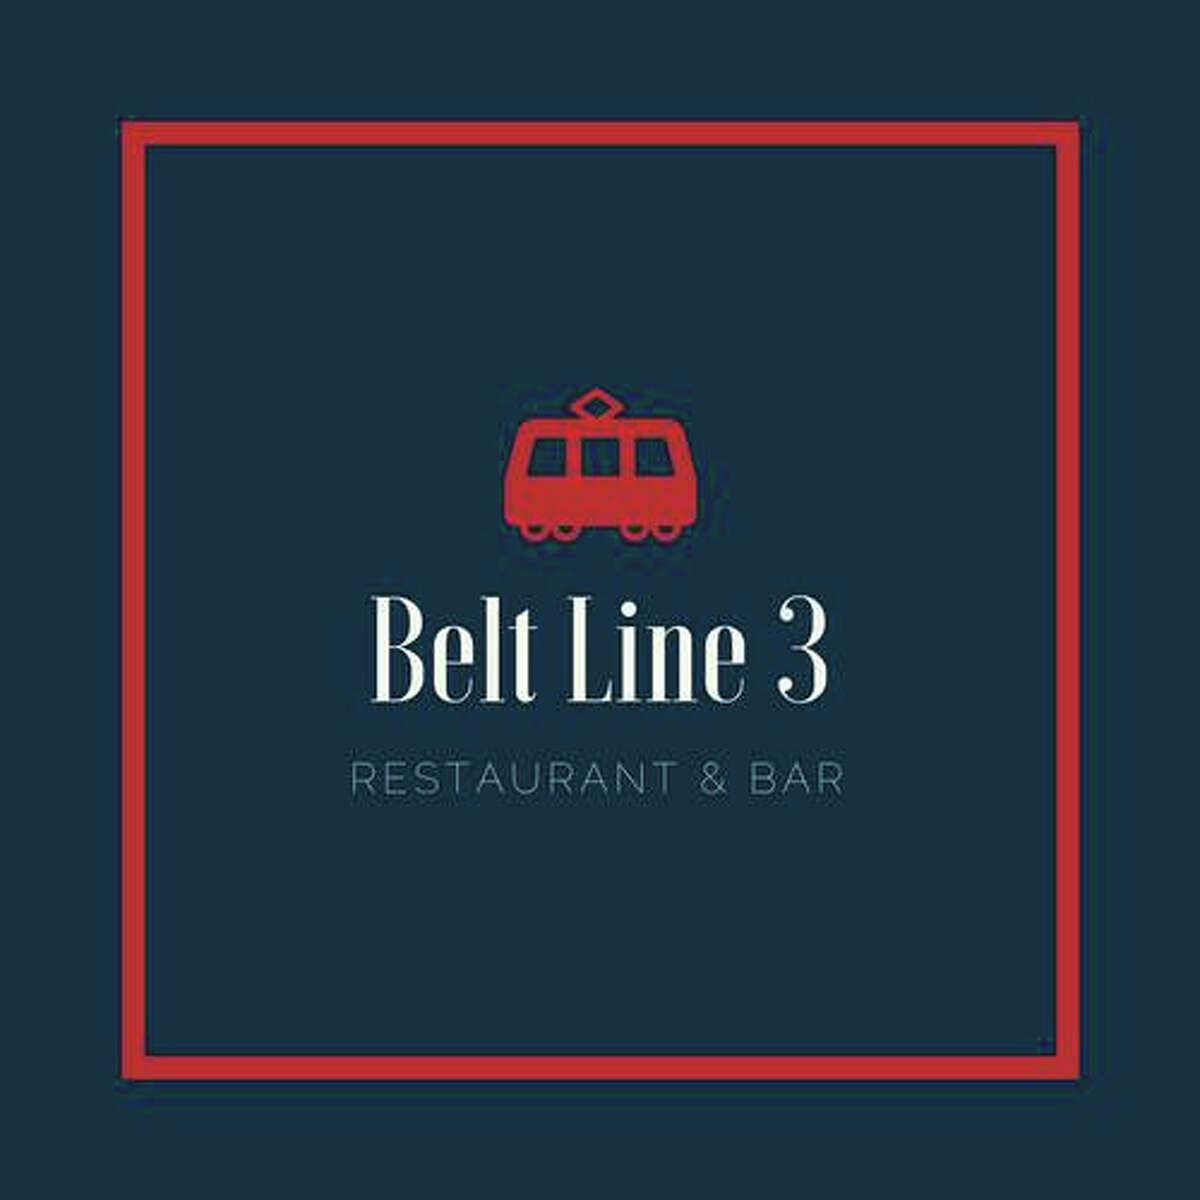 The logo for Belt Line 3 Restaurant & Bar, being readied for an opening in the coming weeks at 340 Hamilton St., in Albany's Park/South neighborhood. (Provided photo)